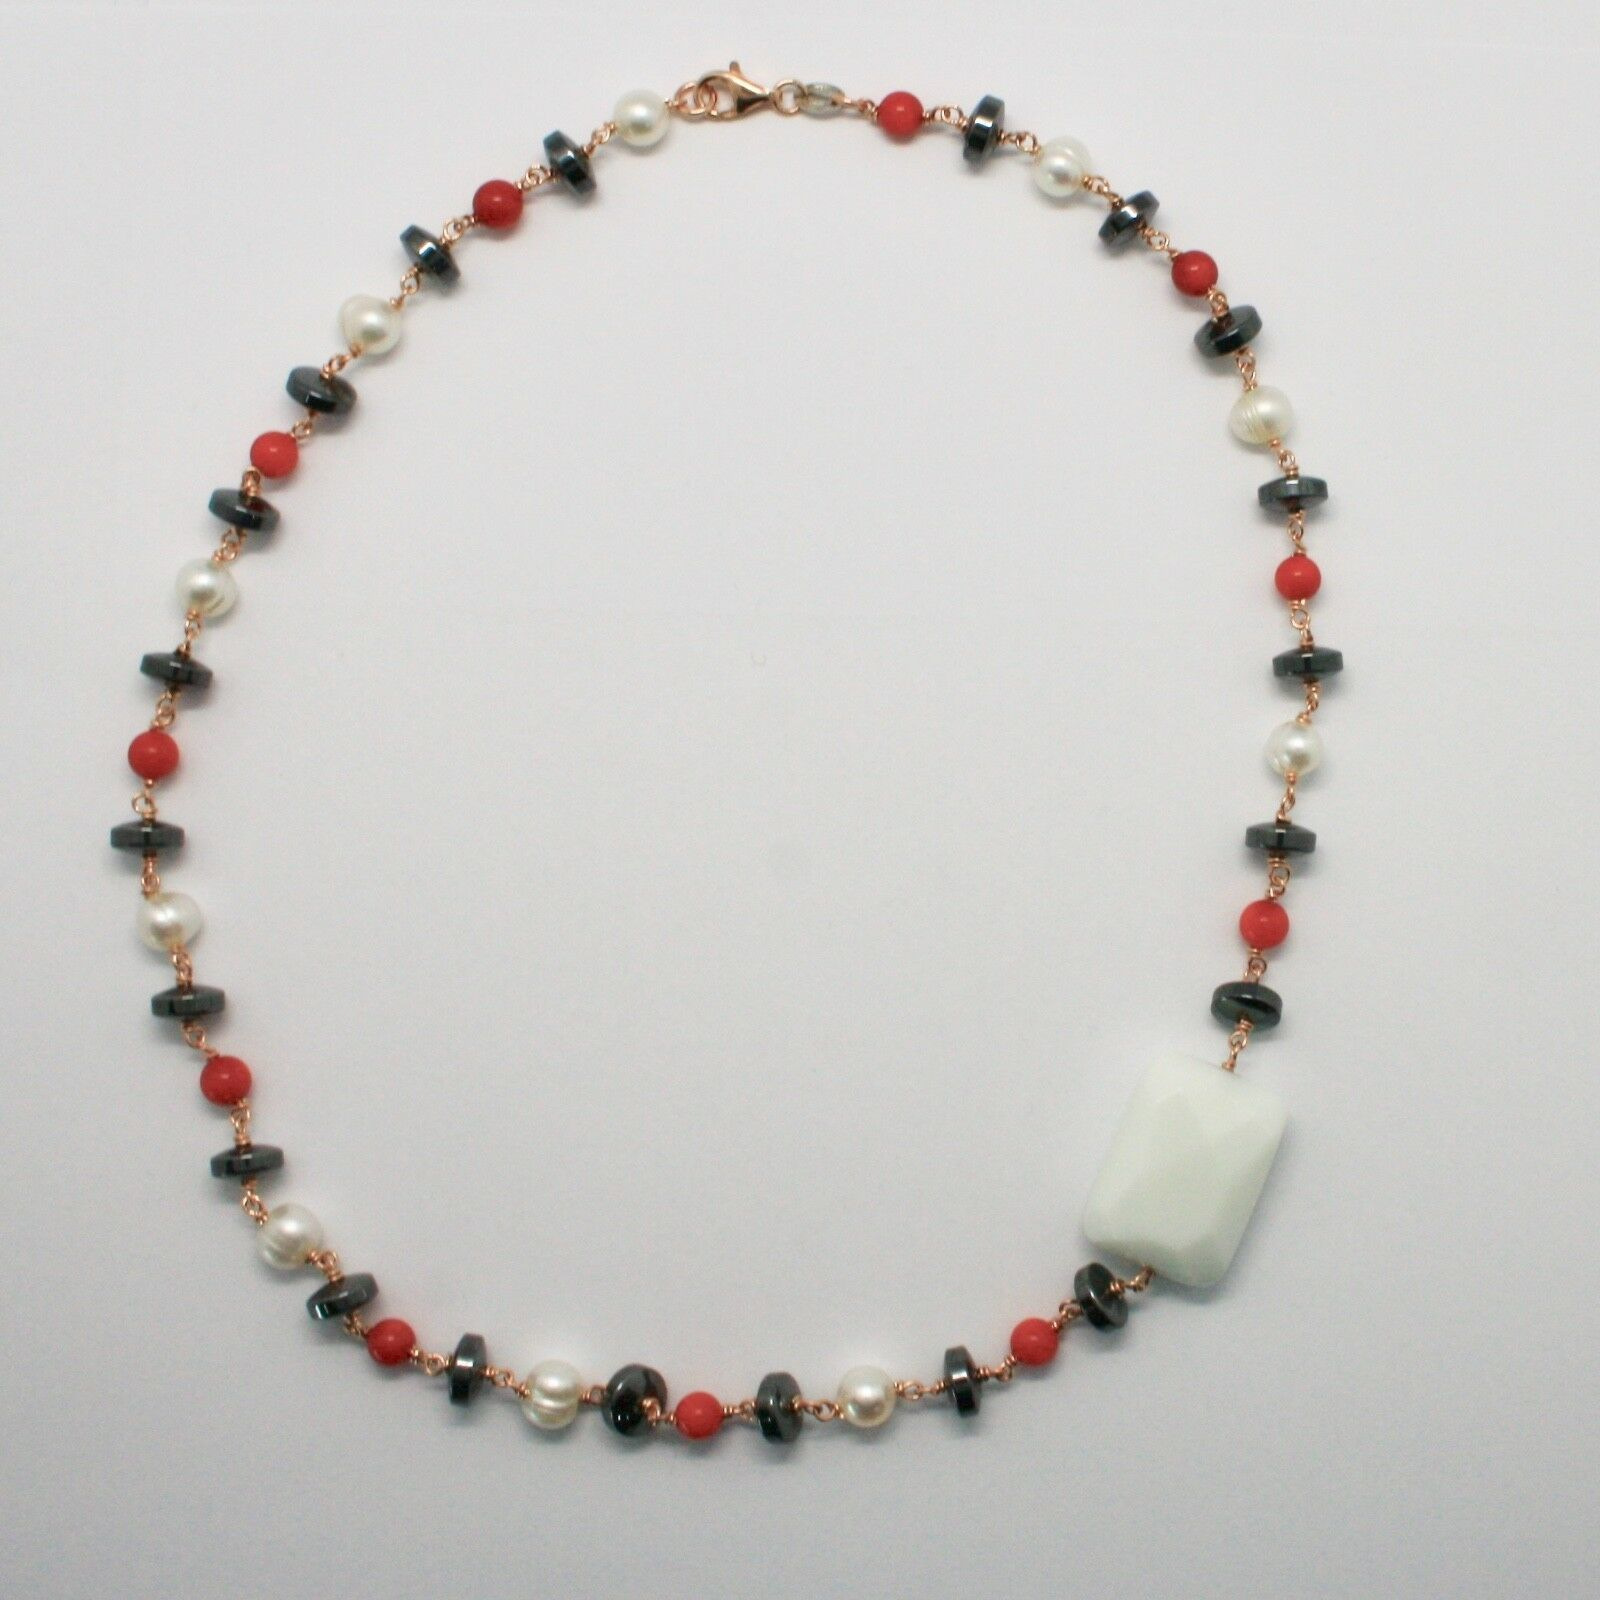 925 STERLING SILVER NECKLACE WITH RED CORAL BAMBOO PEARLS FW AND HEMATITE